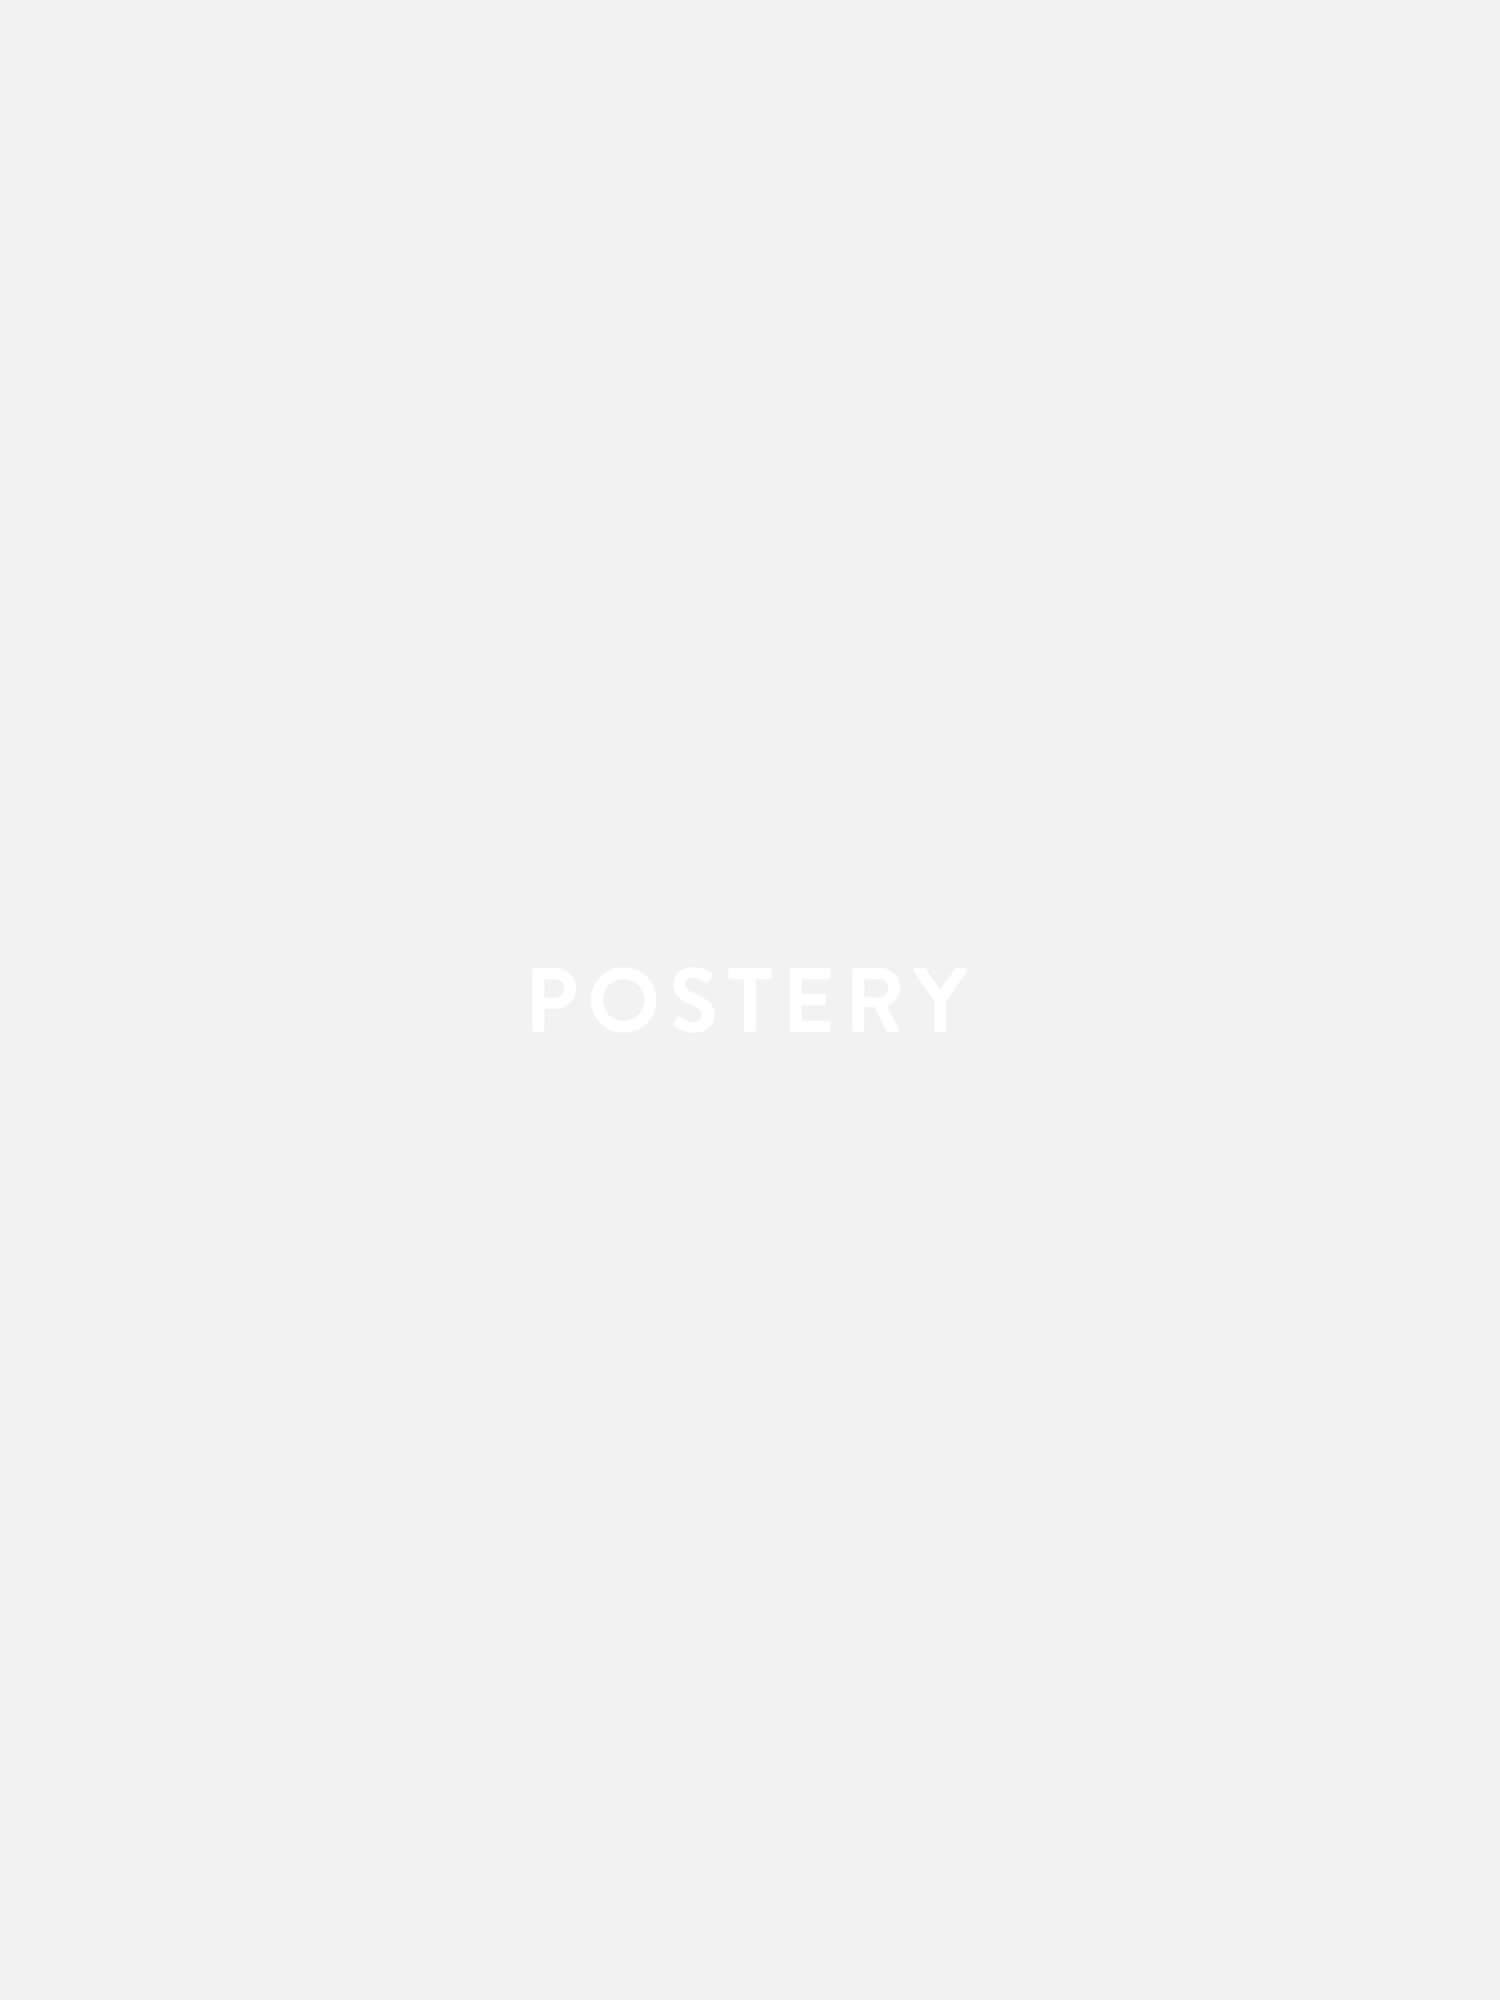 Concrete Bridge Poster